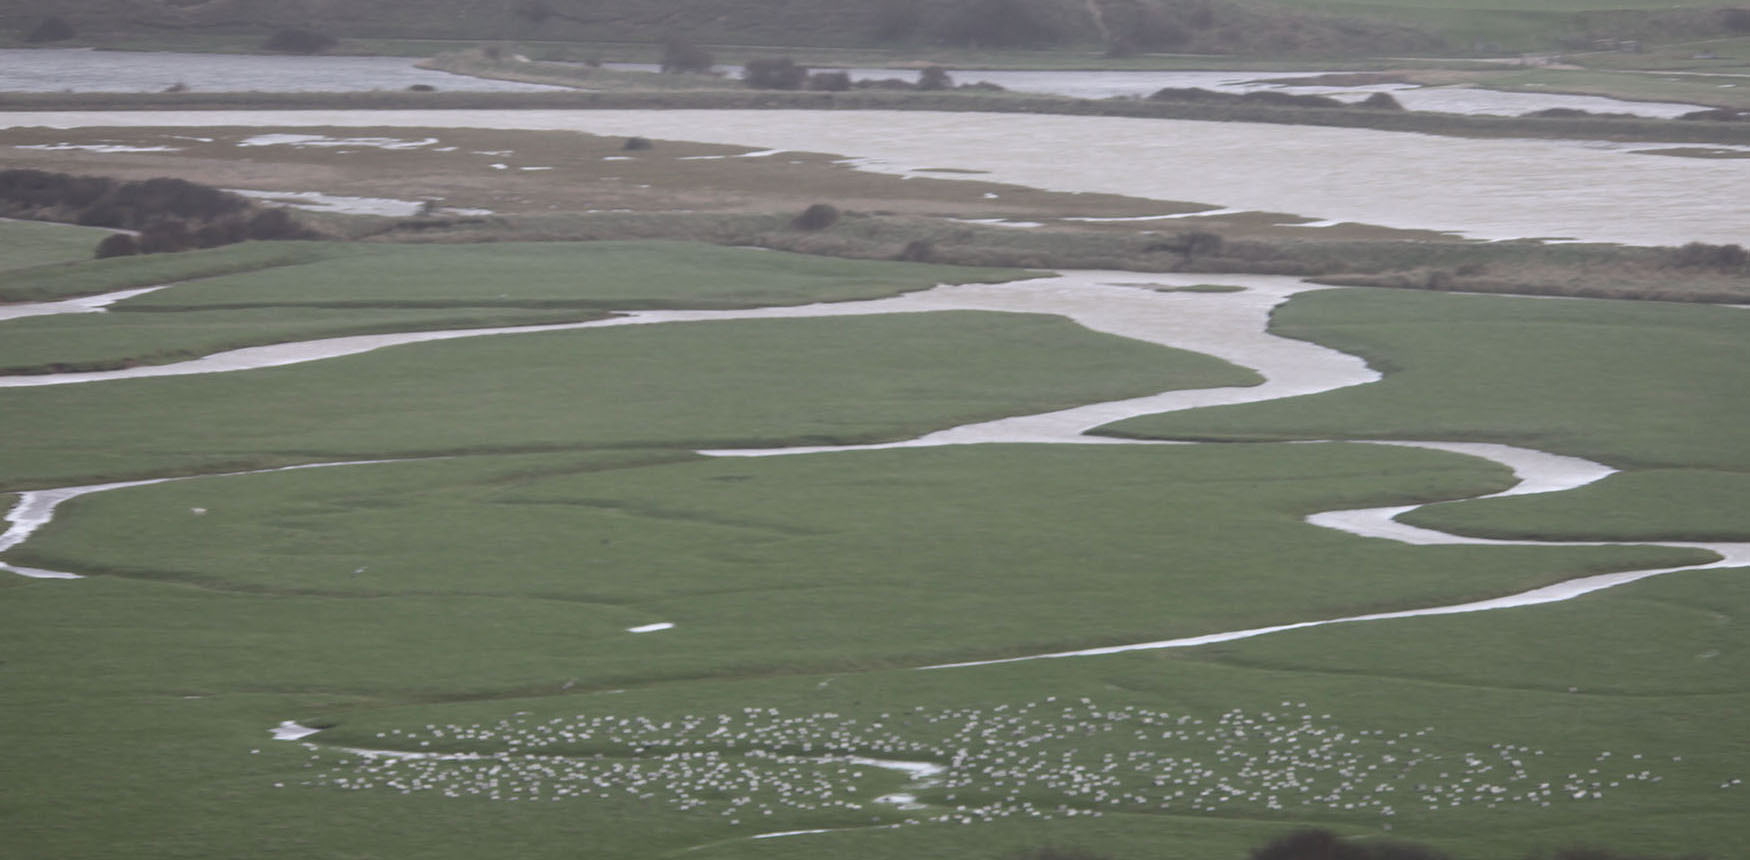 The gulls were taking shelter from the stormy winds , gossiping by the Cuckmere